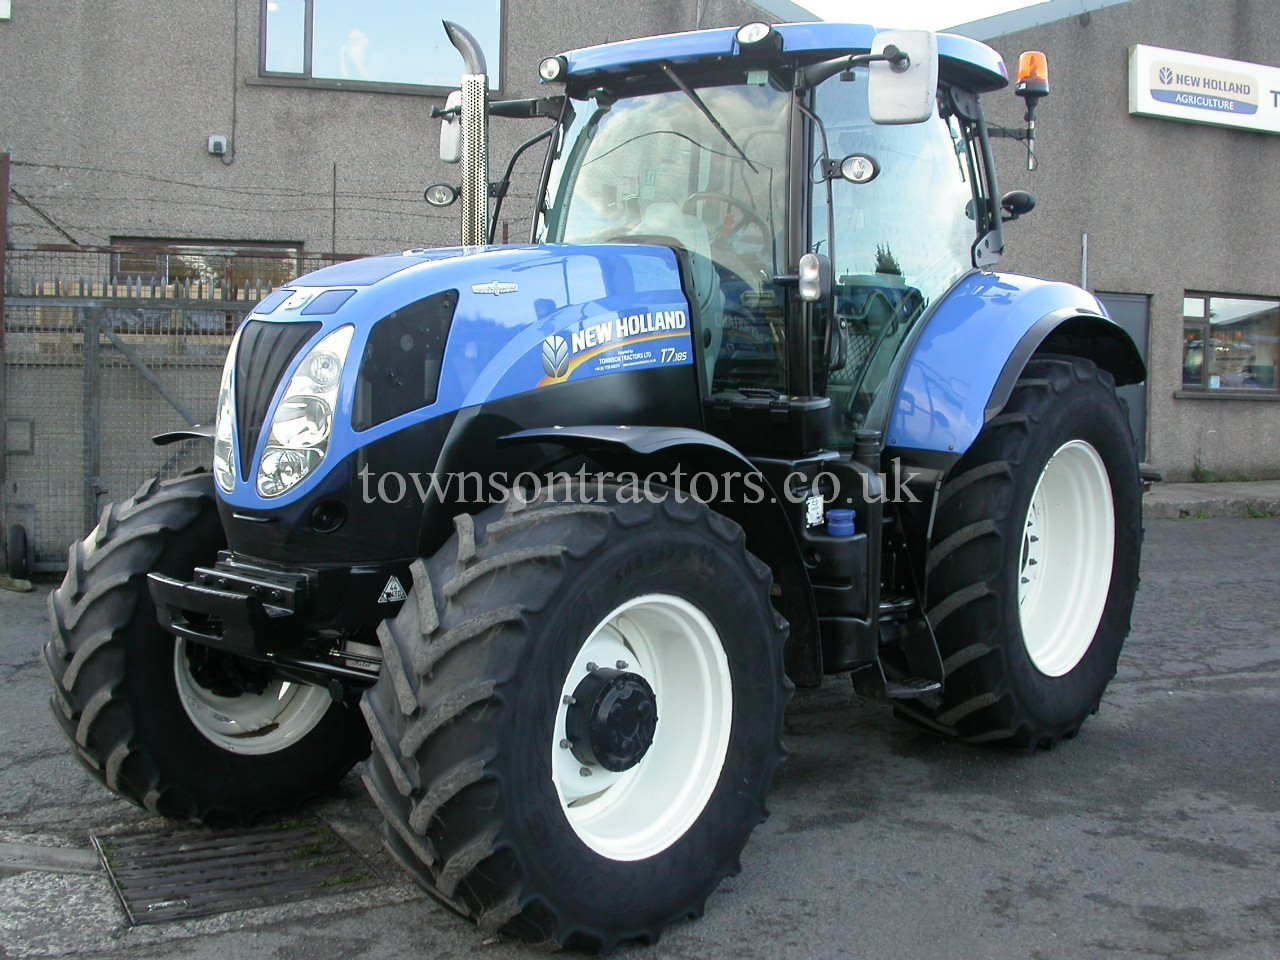 New Holland T7 185 | New Holland Used Tractors, Townson Tractors